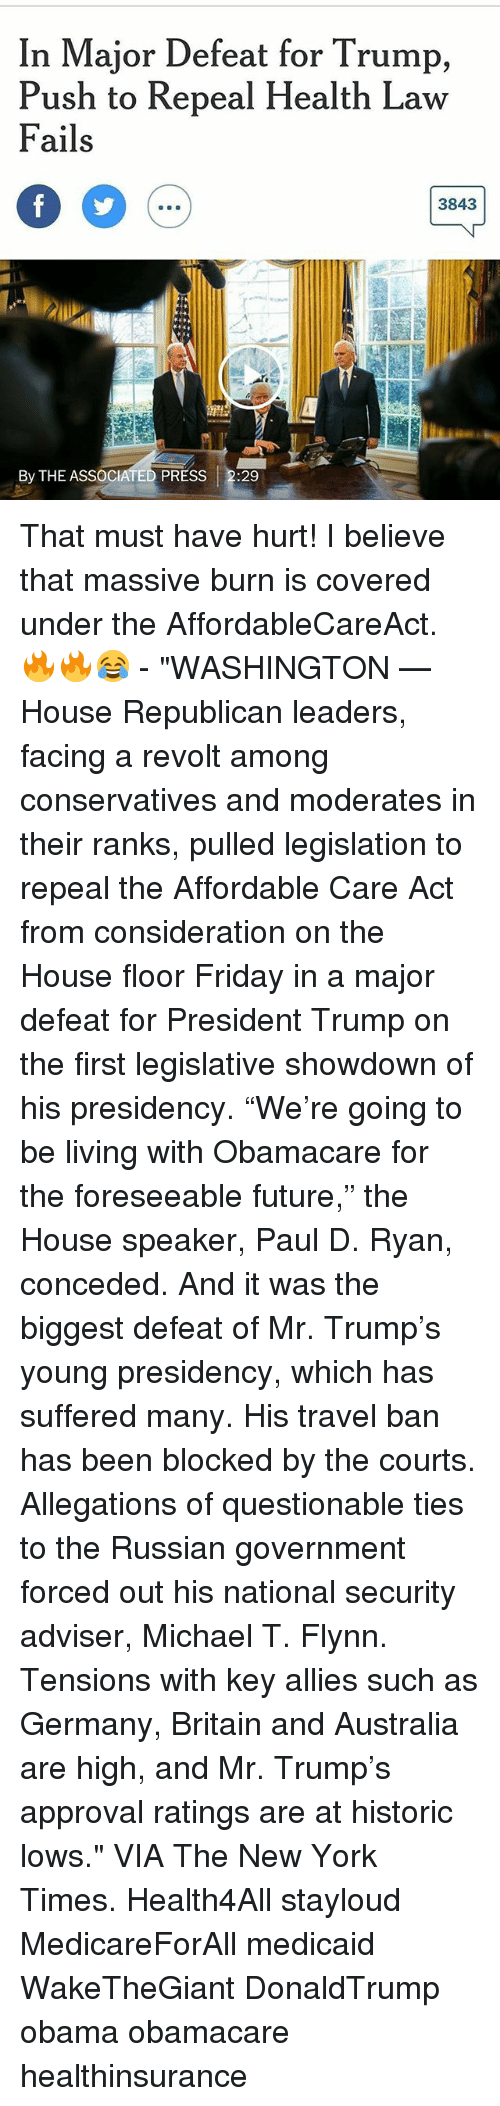 """fridays: In Major Defeat for Trump,  Push to Repeal Health Law  Fails  3843  By THE ASSOCIATED PRESS  29 That must have hurt! I believe that massive burn is covered under the AffordableCareAct. 🔥🔥😂 - """"WASHINGTON — House Republican leaders, facing a revolt among conservatives and moderates in their ranks, pulled legislation to repeal the Affordable Care Act from consideration on the House floor Friday in a major defeat for President Trump on the first legislative showdown of his presidency. """"We're going to be living with Obamacare for the foreseeable future,"""" the House speaker, Paul D. Ryan, conceded. And it was the biggest defeat of Mr. Trump's young presidency, which has suffered many. His travel ban has been blocked by the courts. Allegations of questionable ties to the Russian government forced out his national security adviser, Michael T. Flynn. Tensions with key allies such as Germany, Britain and Australia are high, and Mr. Trump's approval ratings are at historic lows."""" VIA The New York Times. Health4All stayloud MedicareForAll medicaid WakeTheGiant DonaldTrump obama obamacare healthinsurance"""